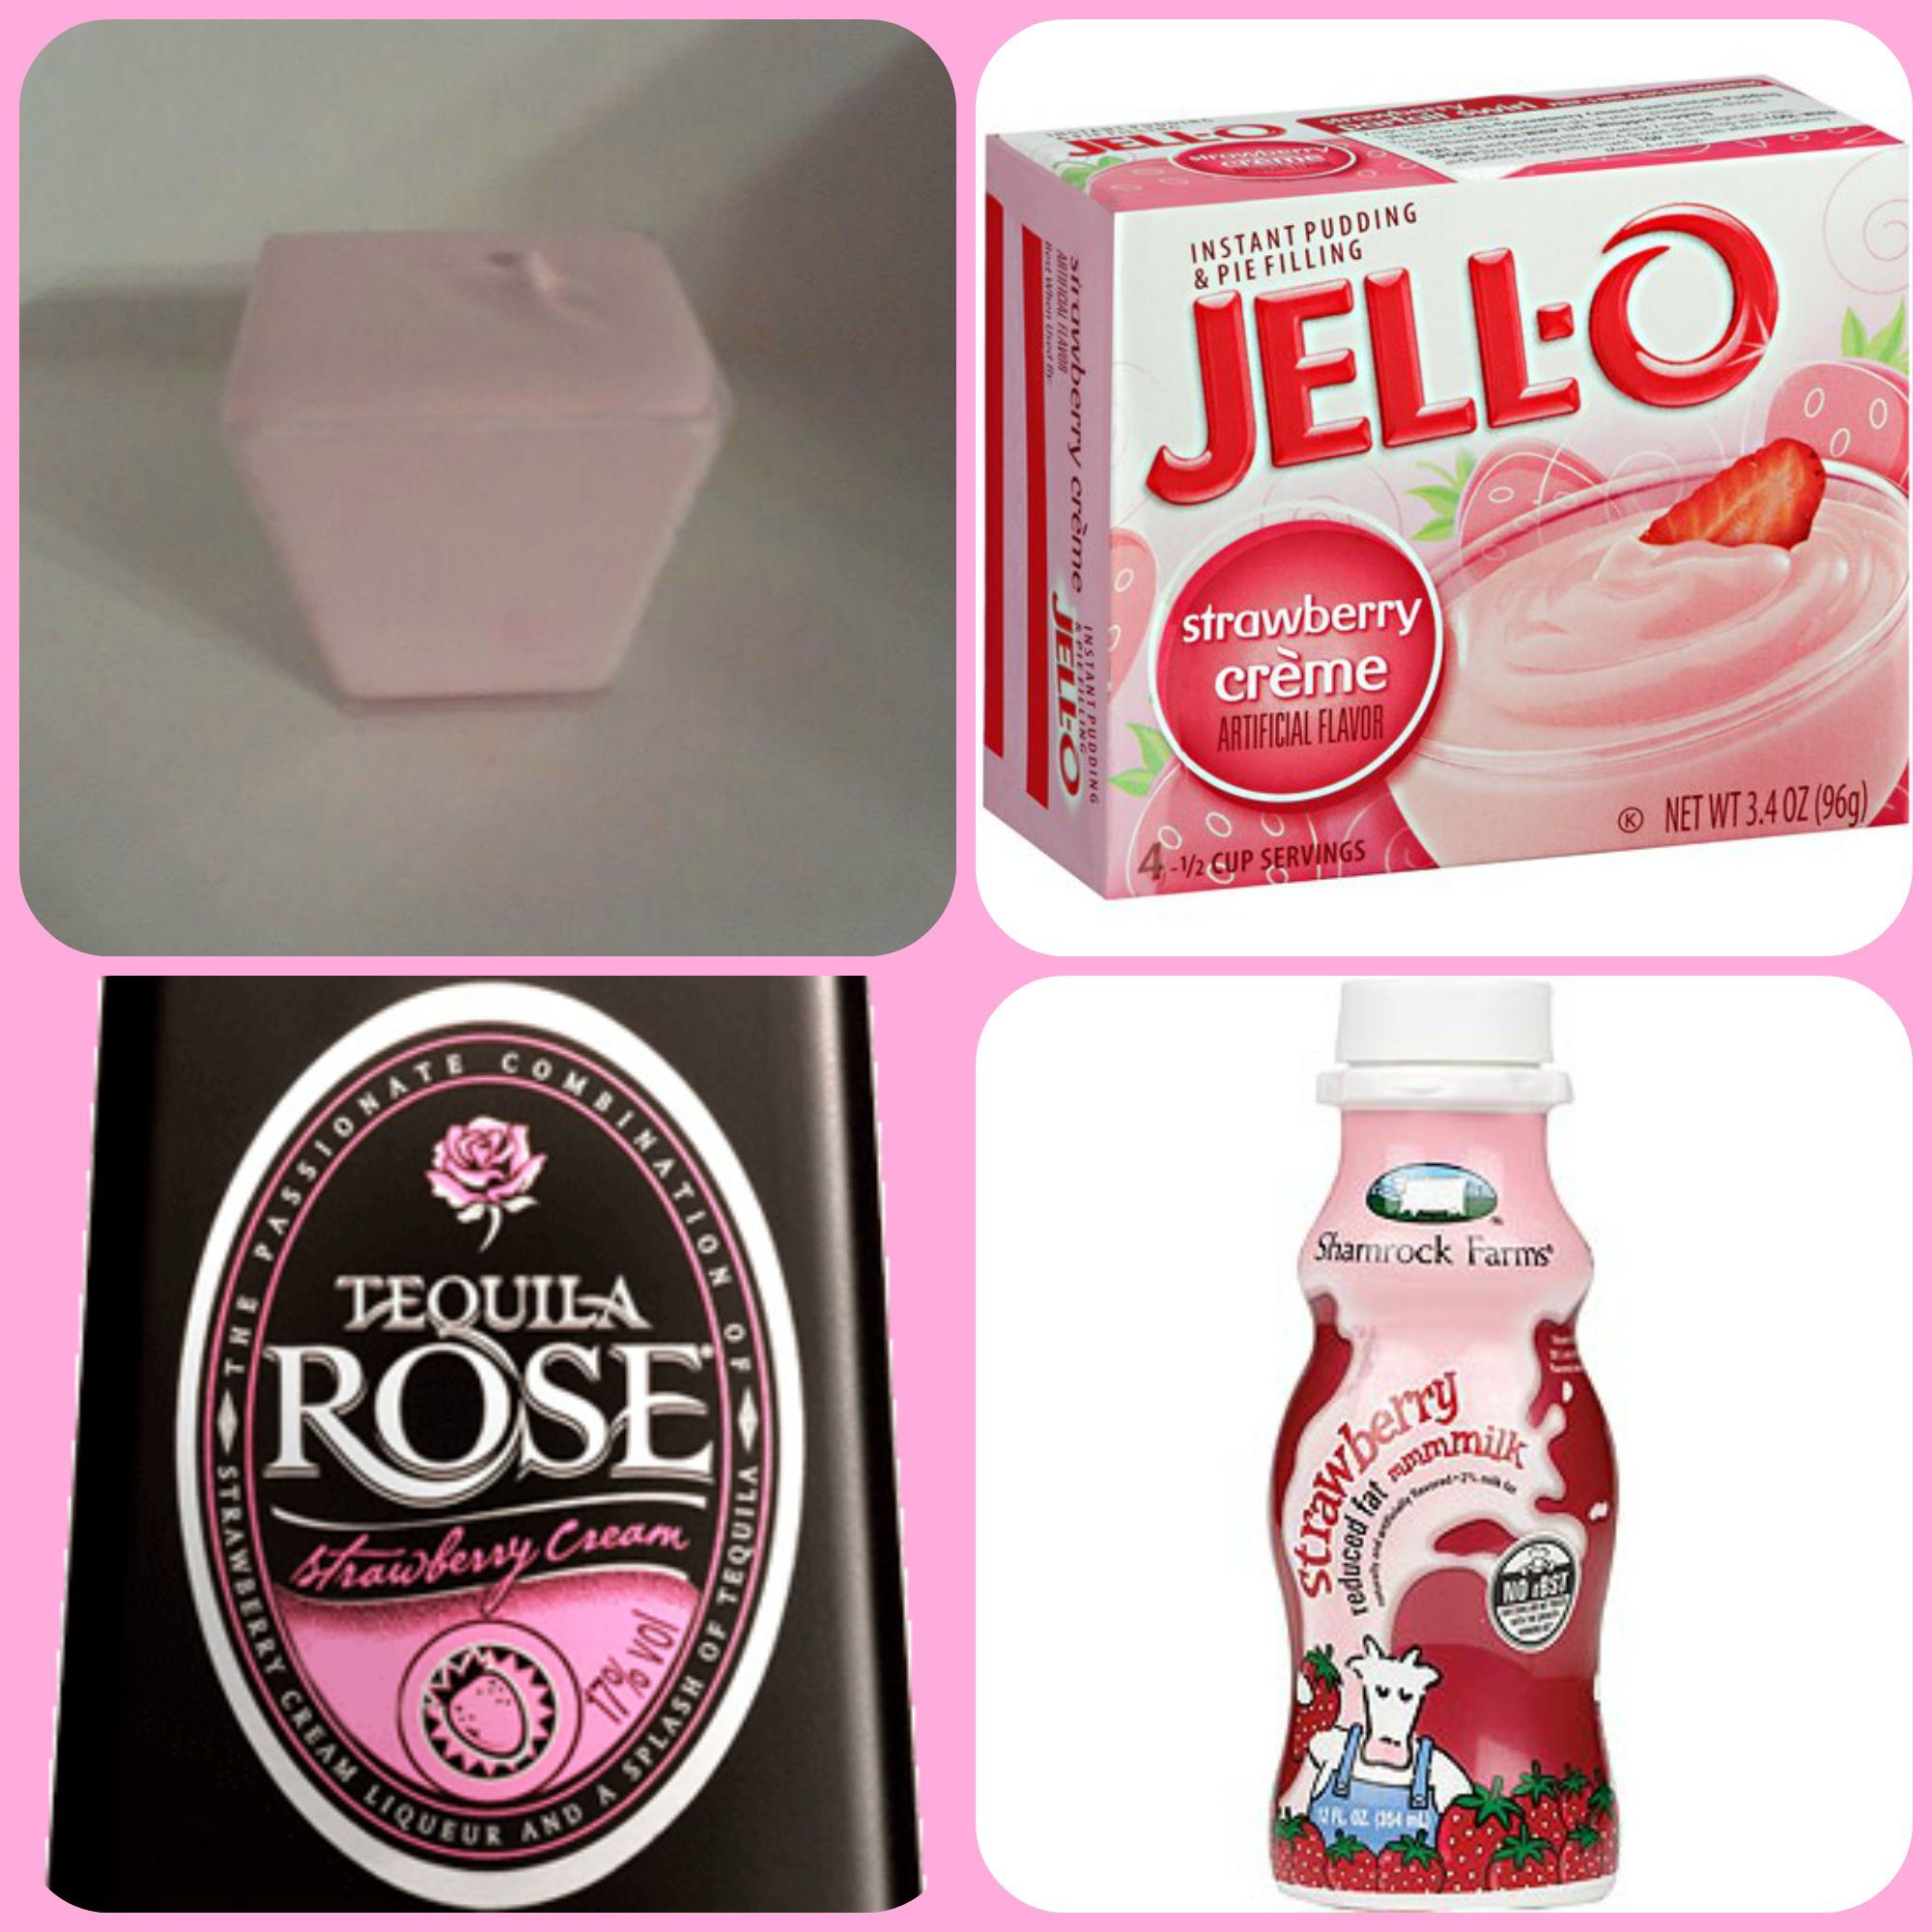 Pudding Shot Recipes With Tequila Rose